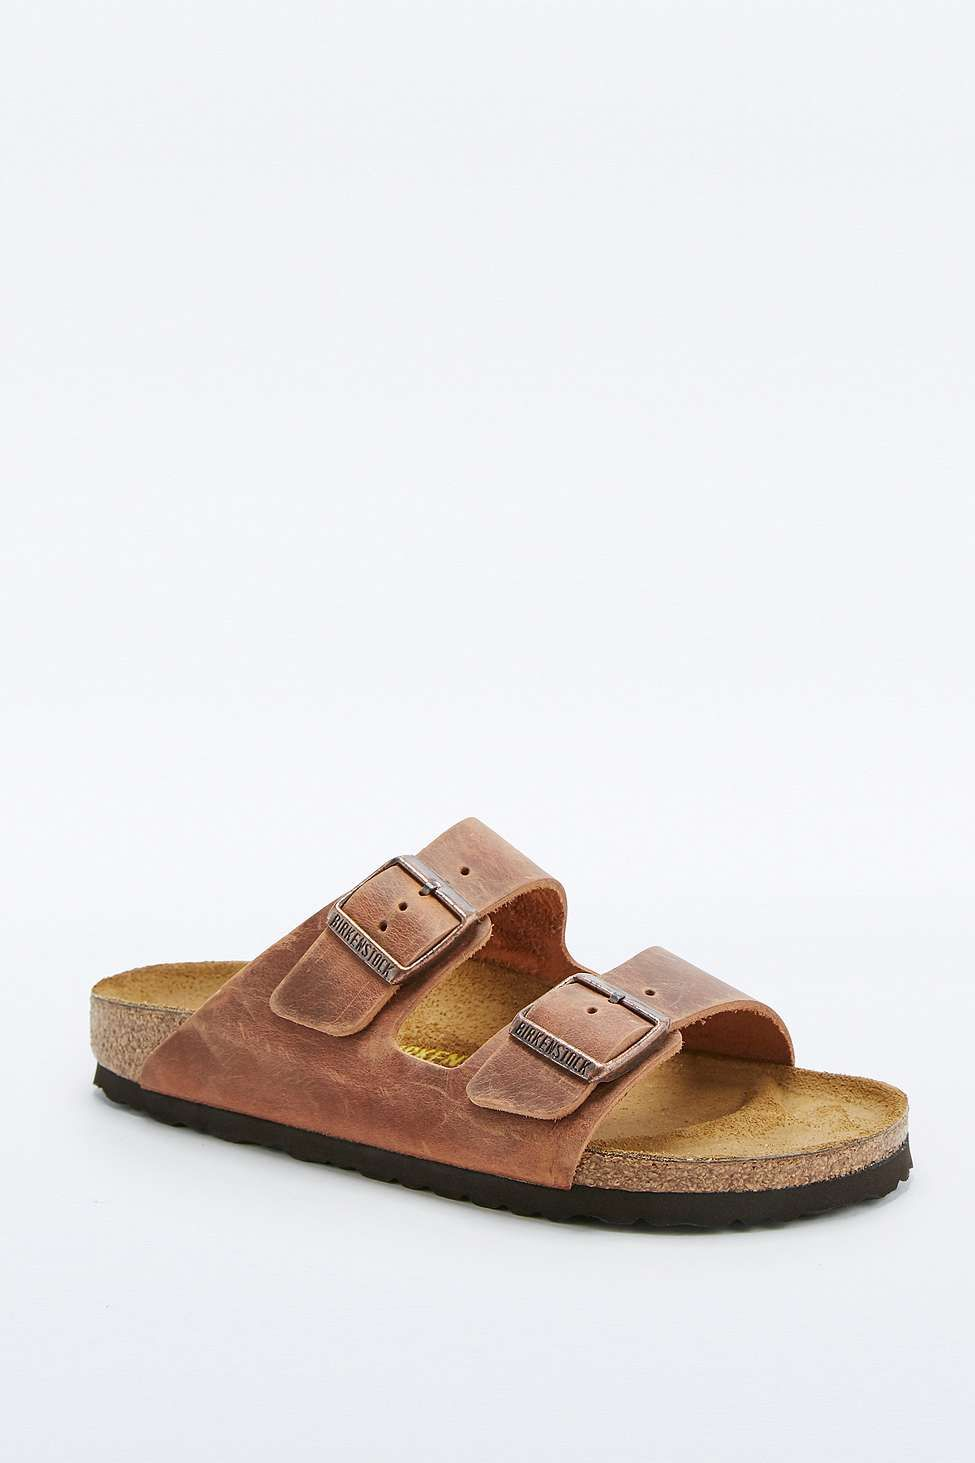 Birkenstock Arizona Antique Tan Natural Leather Sandals  238f0782964